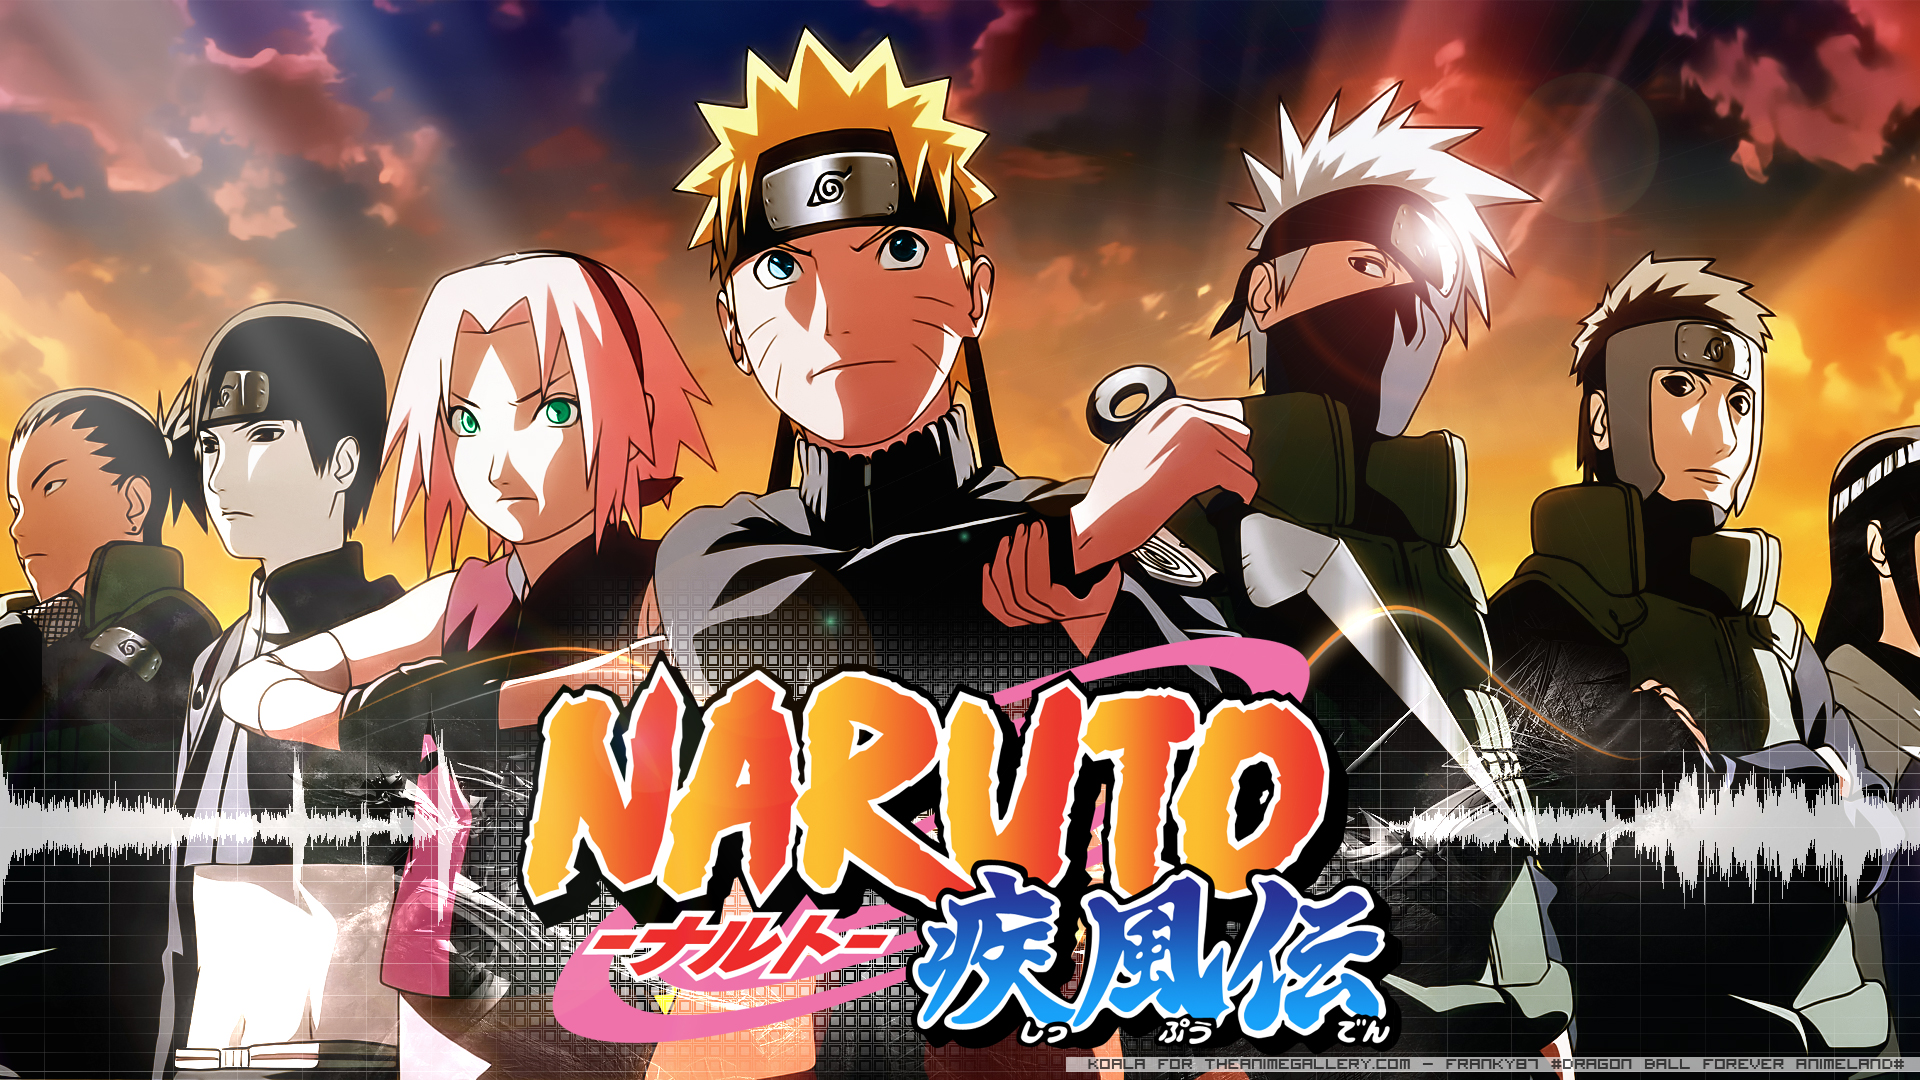 naruto anime   Naruto Wallpaper 33923256 1920x1080